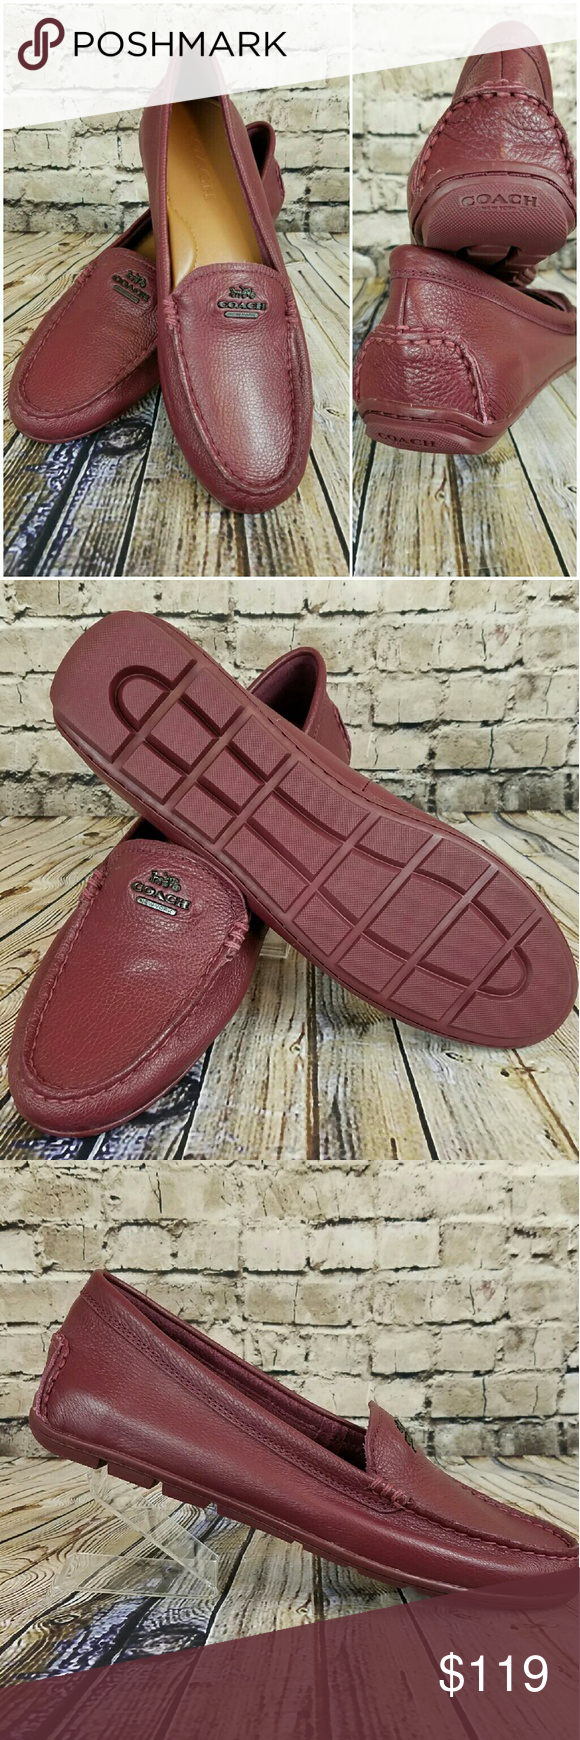 8ddc1d60def New COACH Mary Lock Up Driving Loafer in Wine New